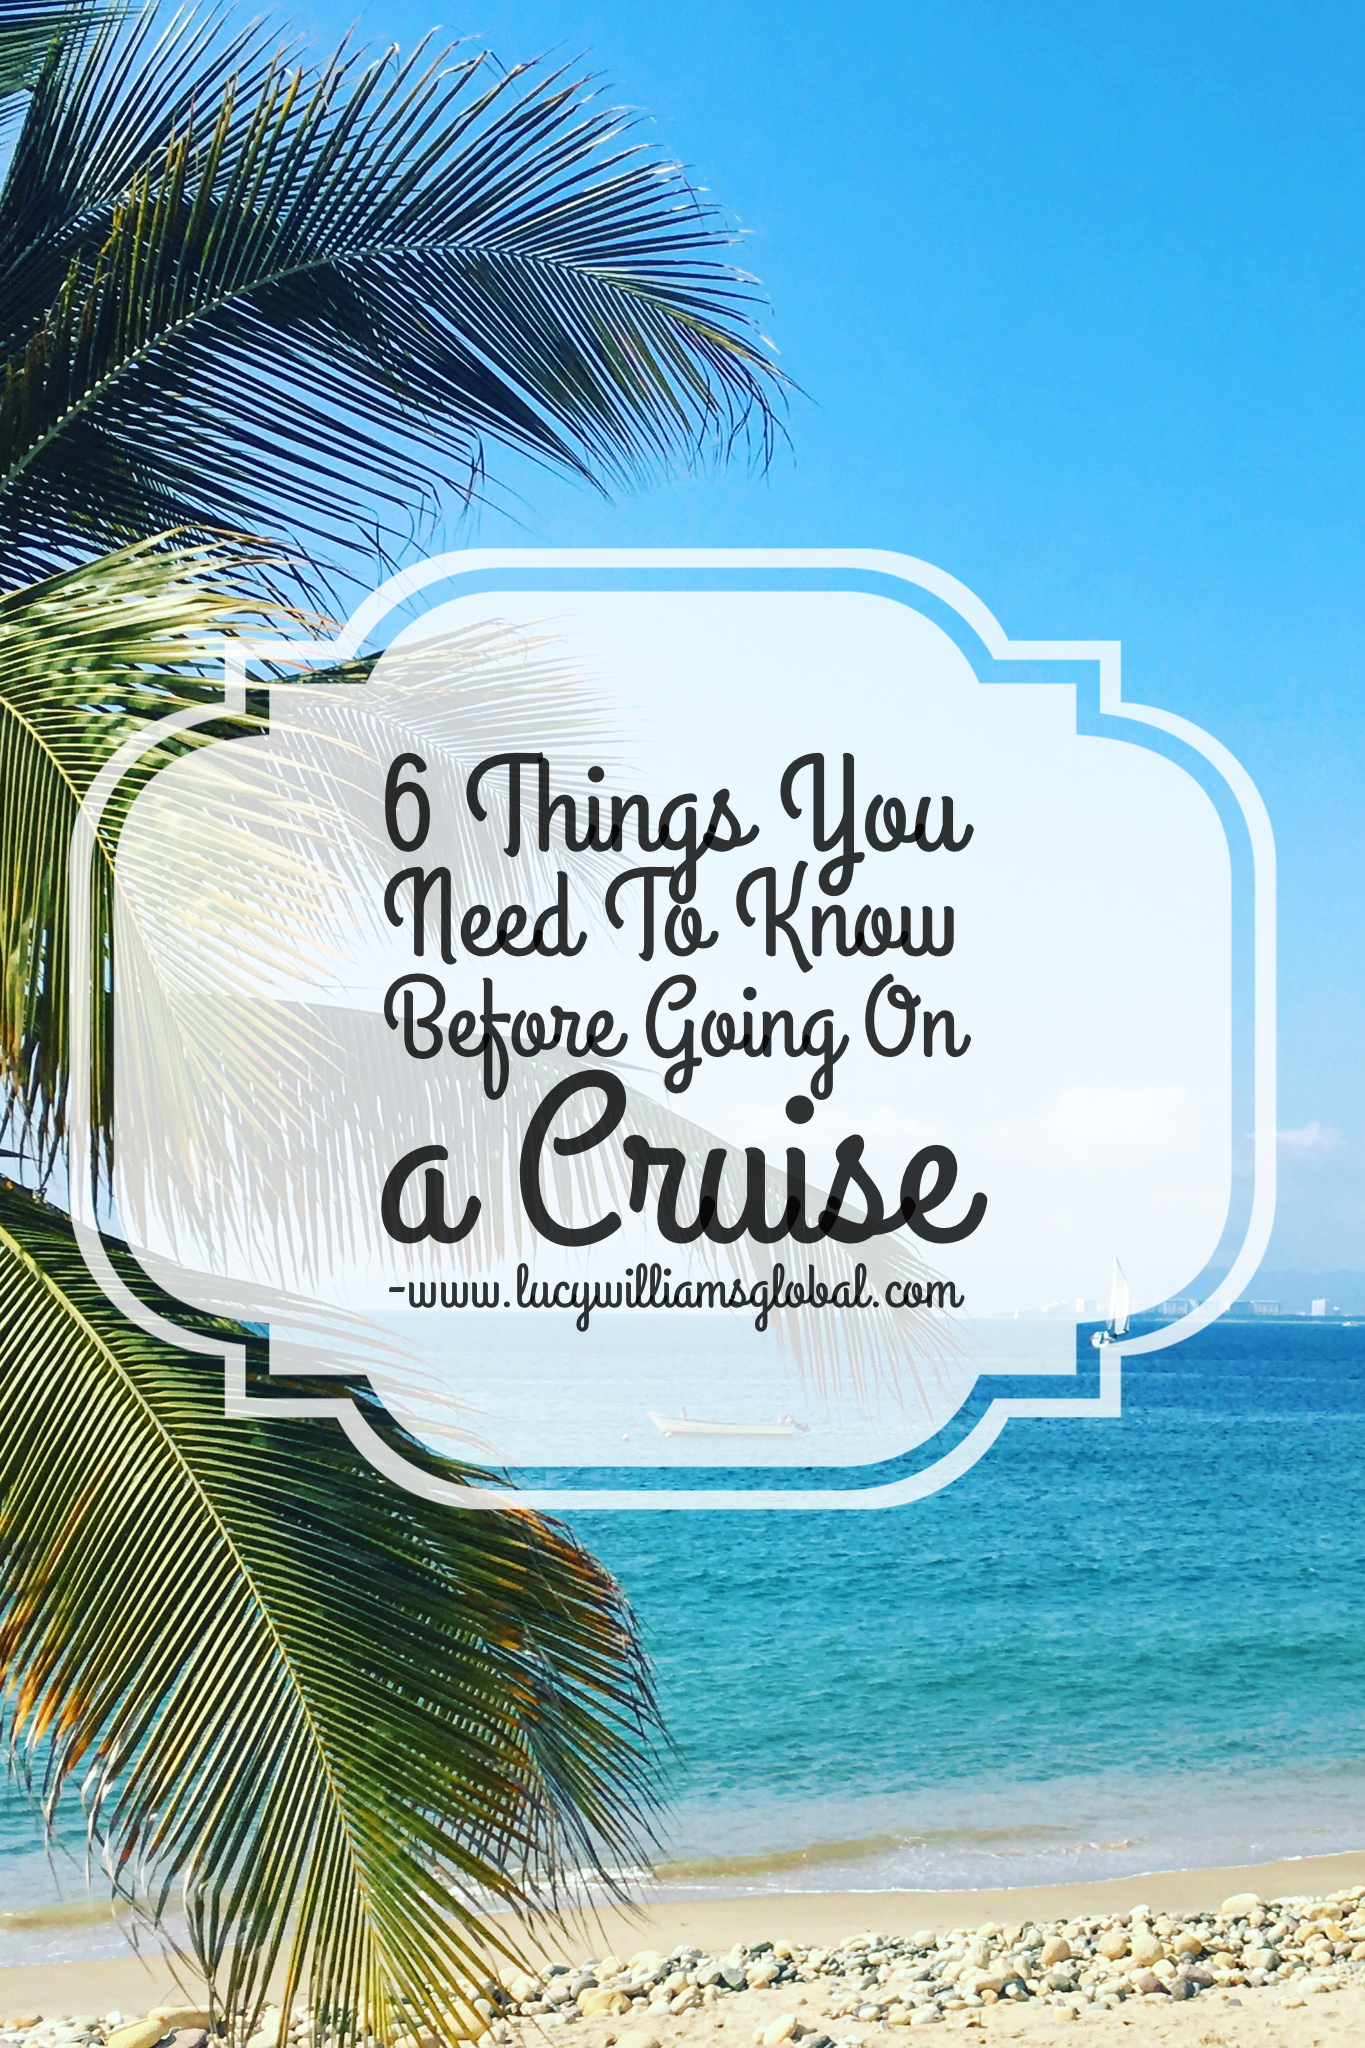 6 Things You Need To Know Before Going On a Cruise